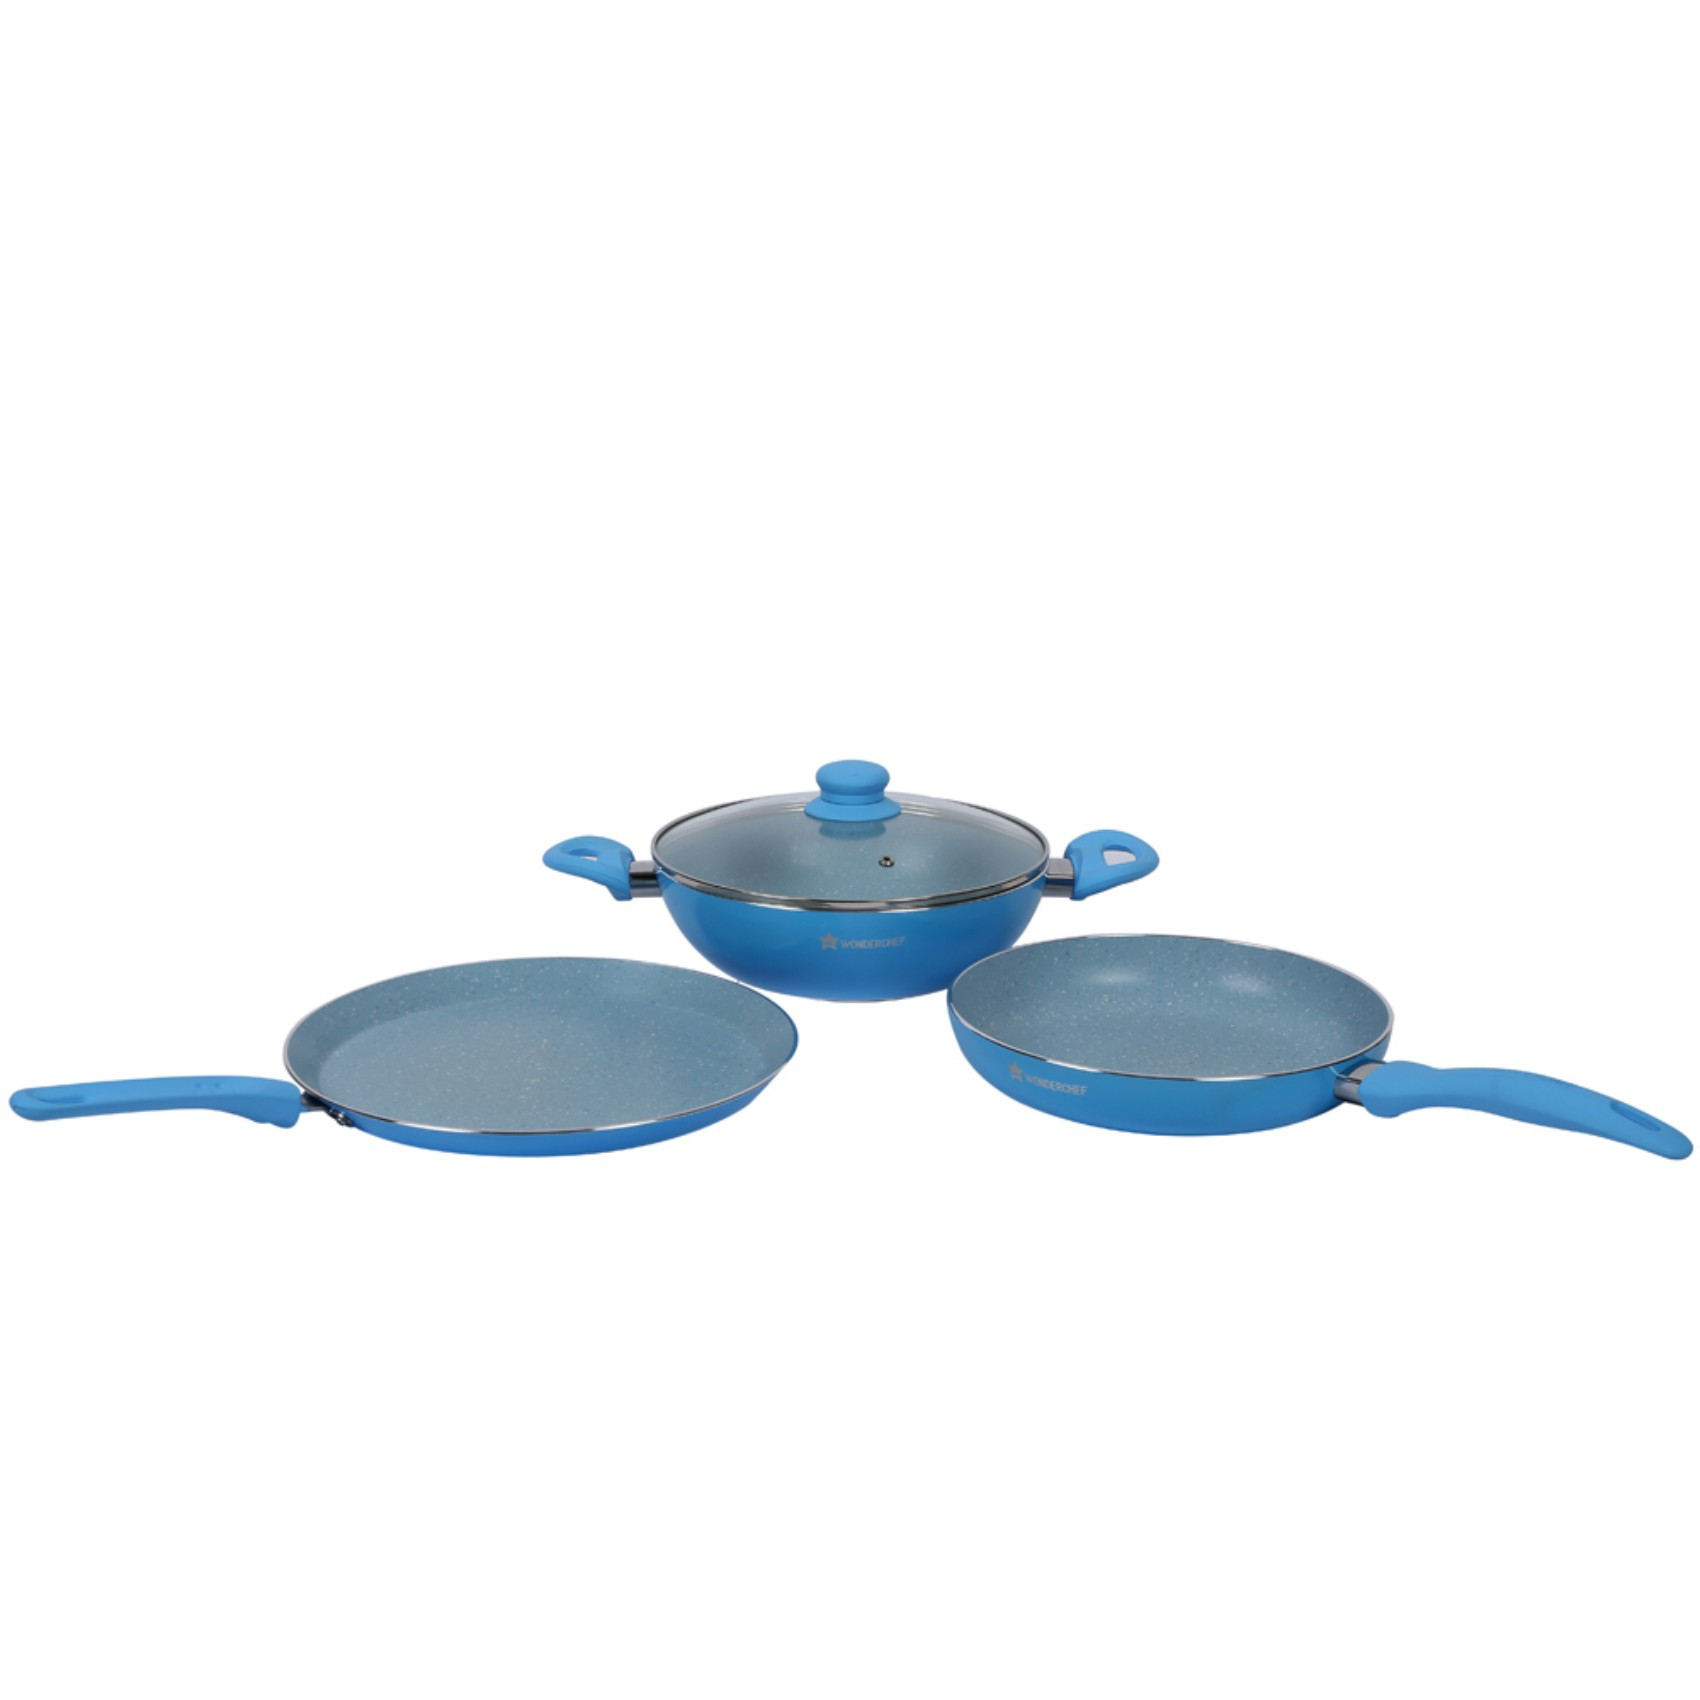 French Blossom Cookware Set Aluminium Cookware Sets in Blue Colour by Wonderchef